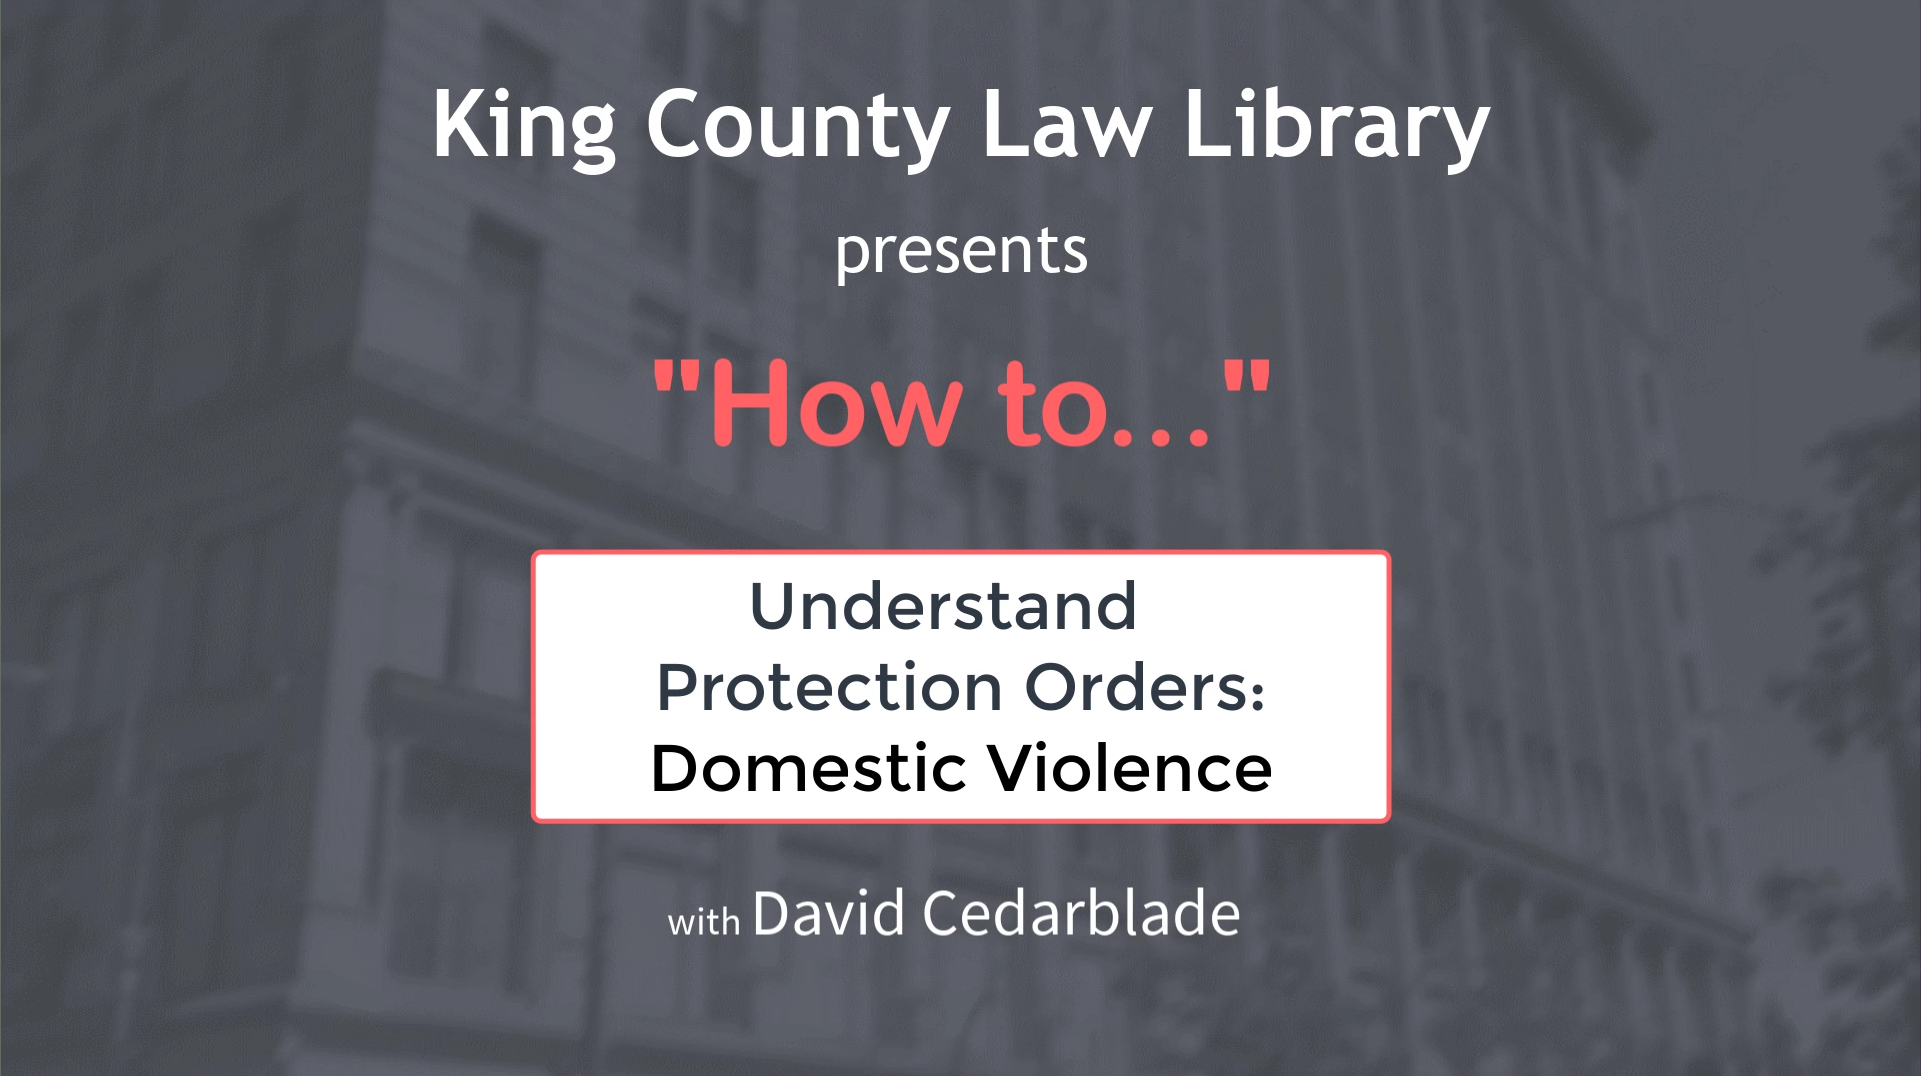 HOW TO...  Understand Protection Orders: Domestic Violence